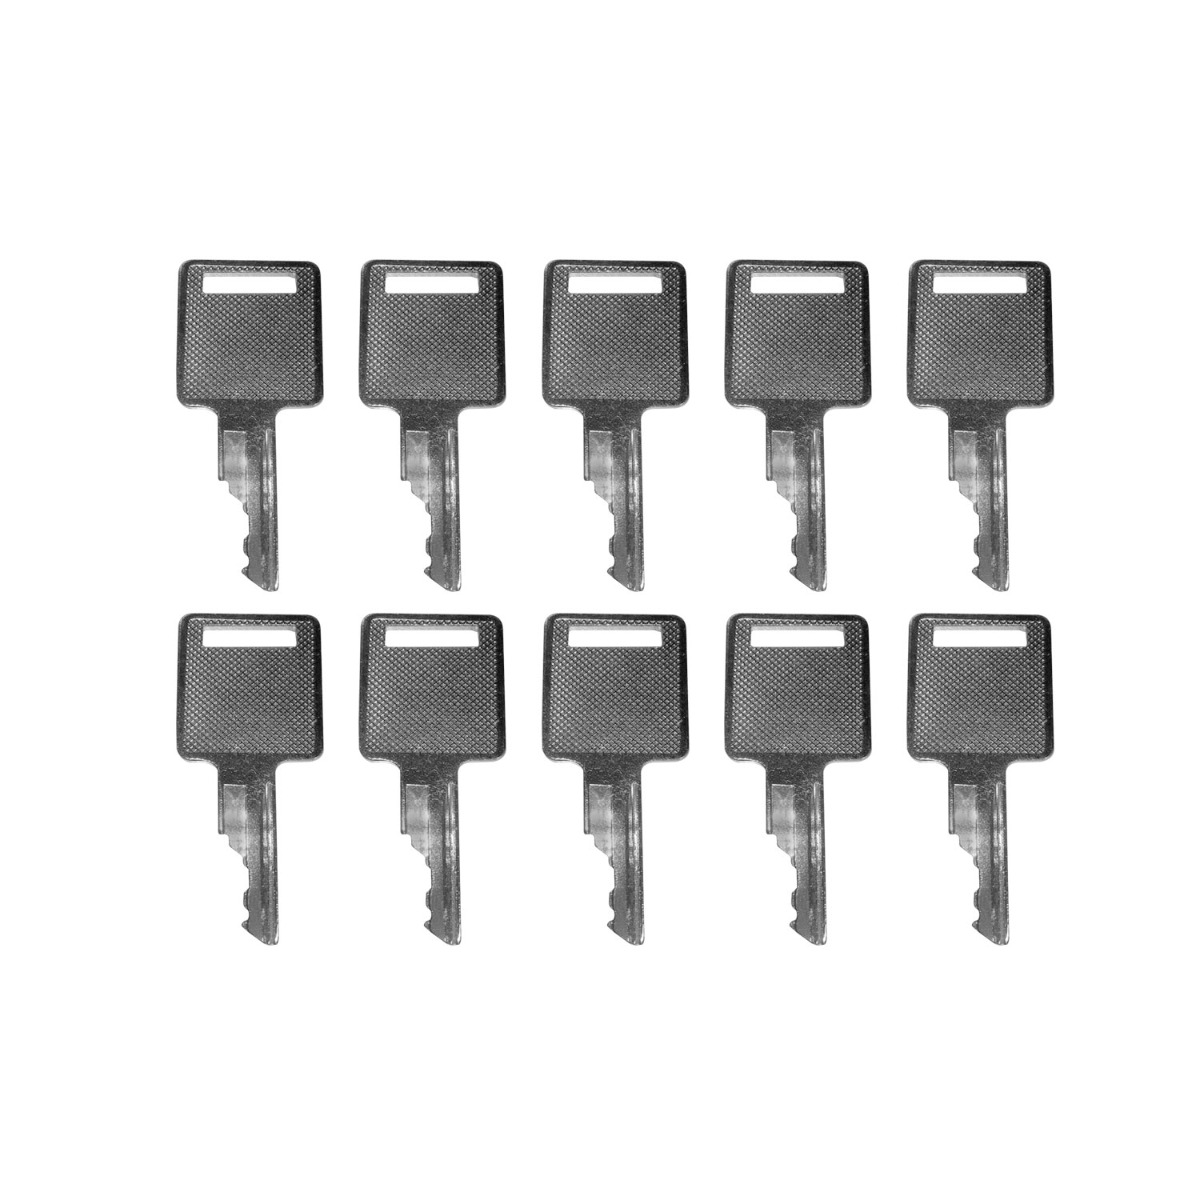 Ignition Key 6709527 10Pcs Compatible with Case Harvester 2155 2555